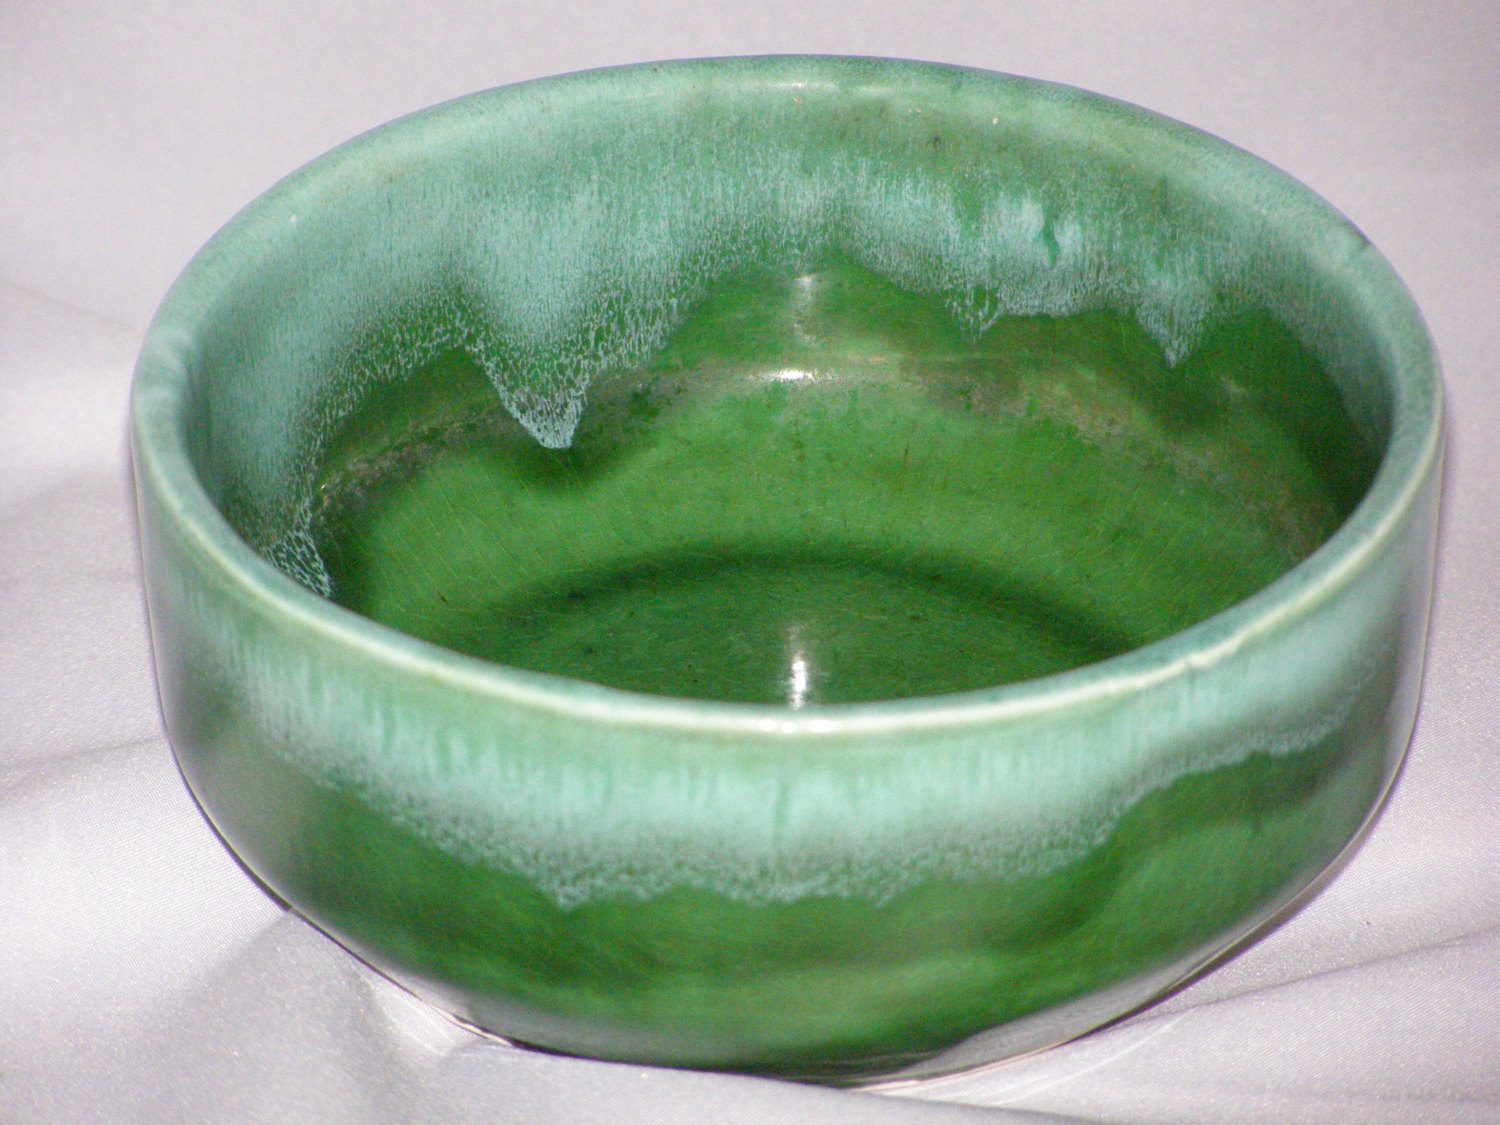 California pottery green bowl planter ceramic marked for Affordable pools pearl river la